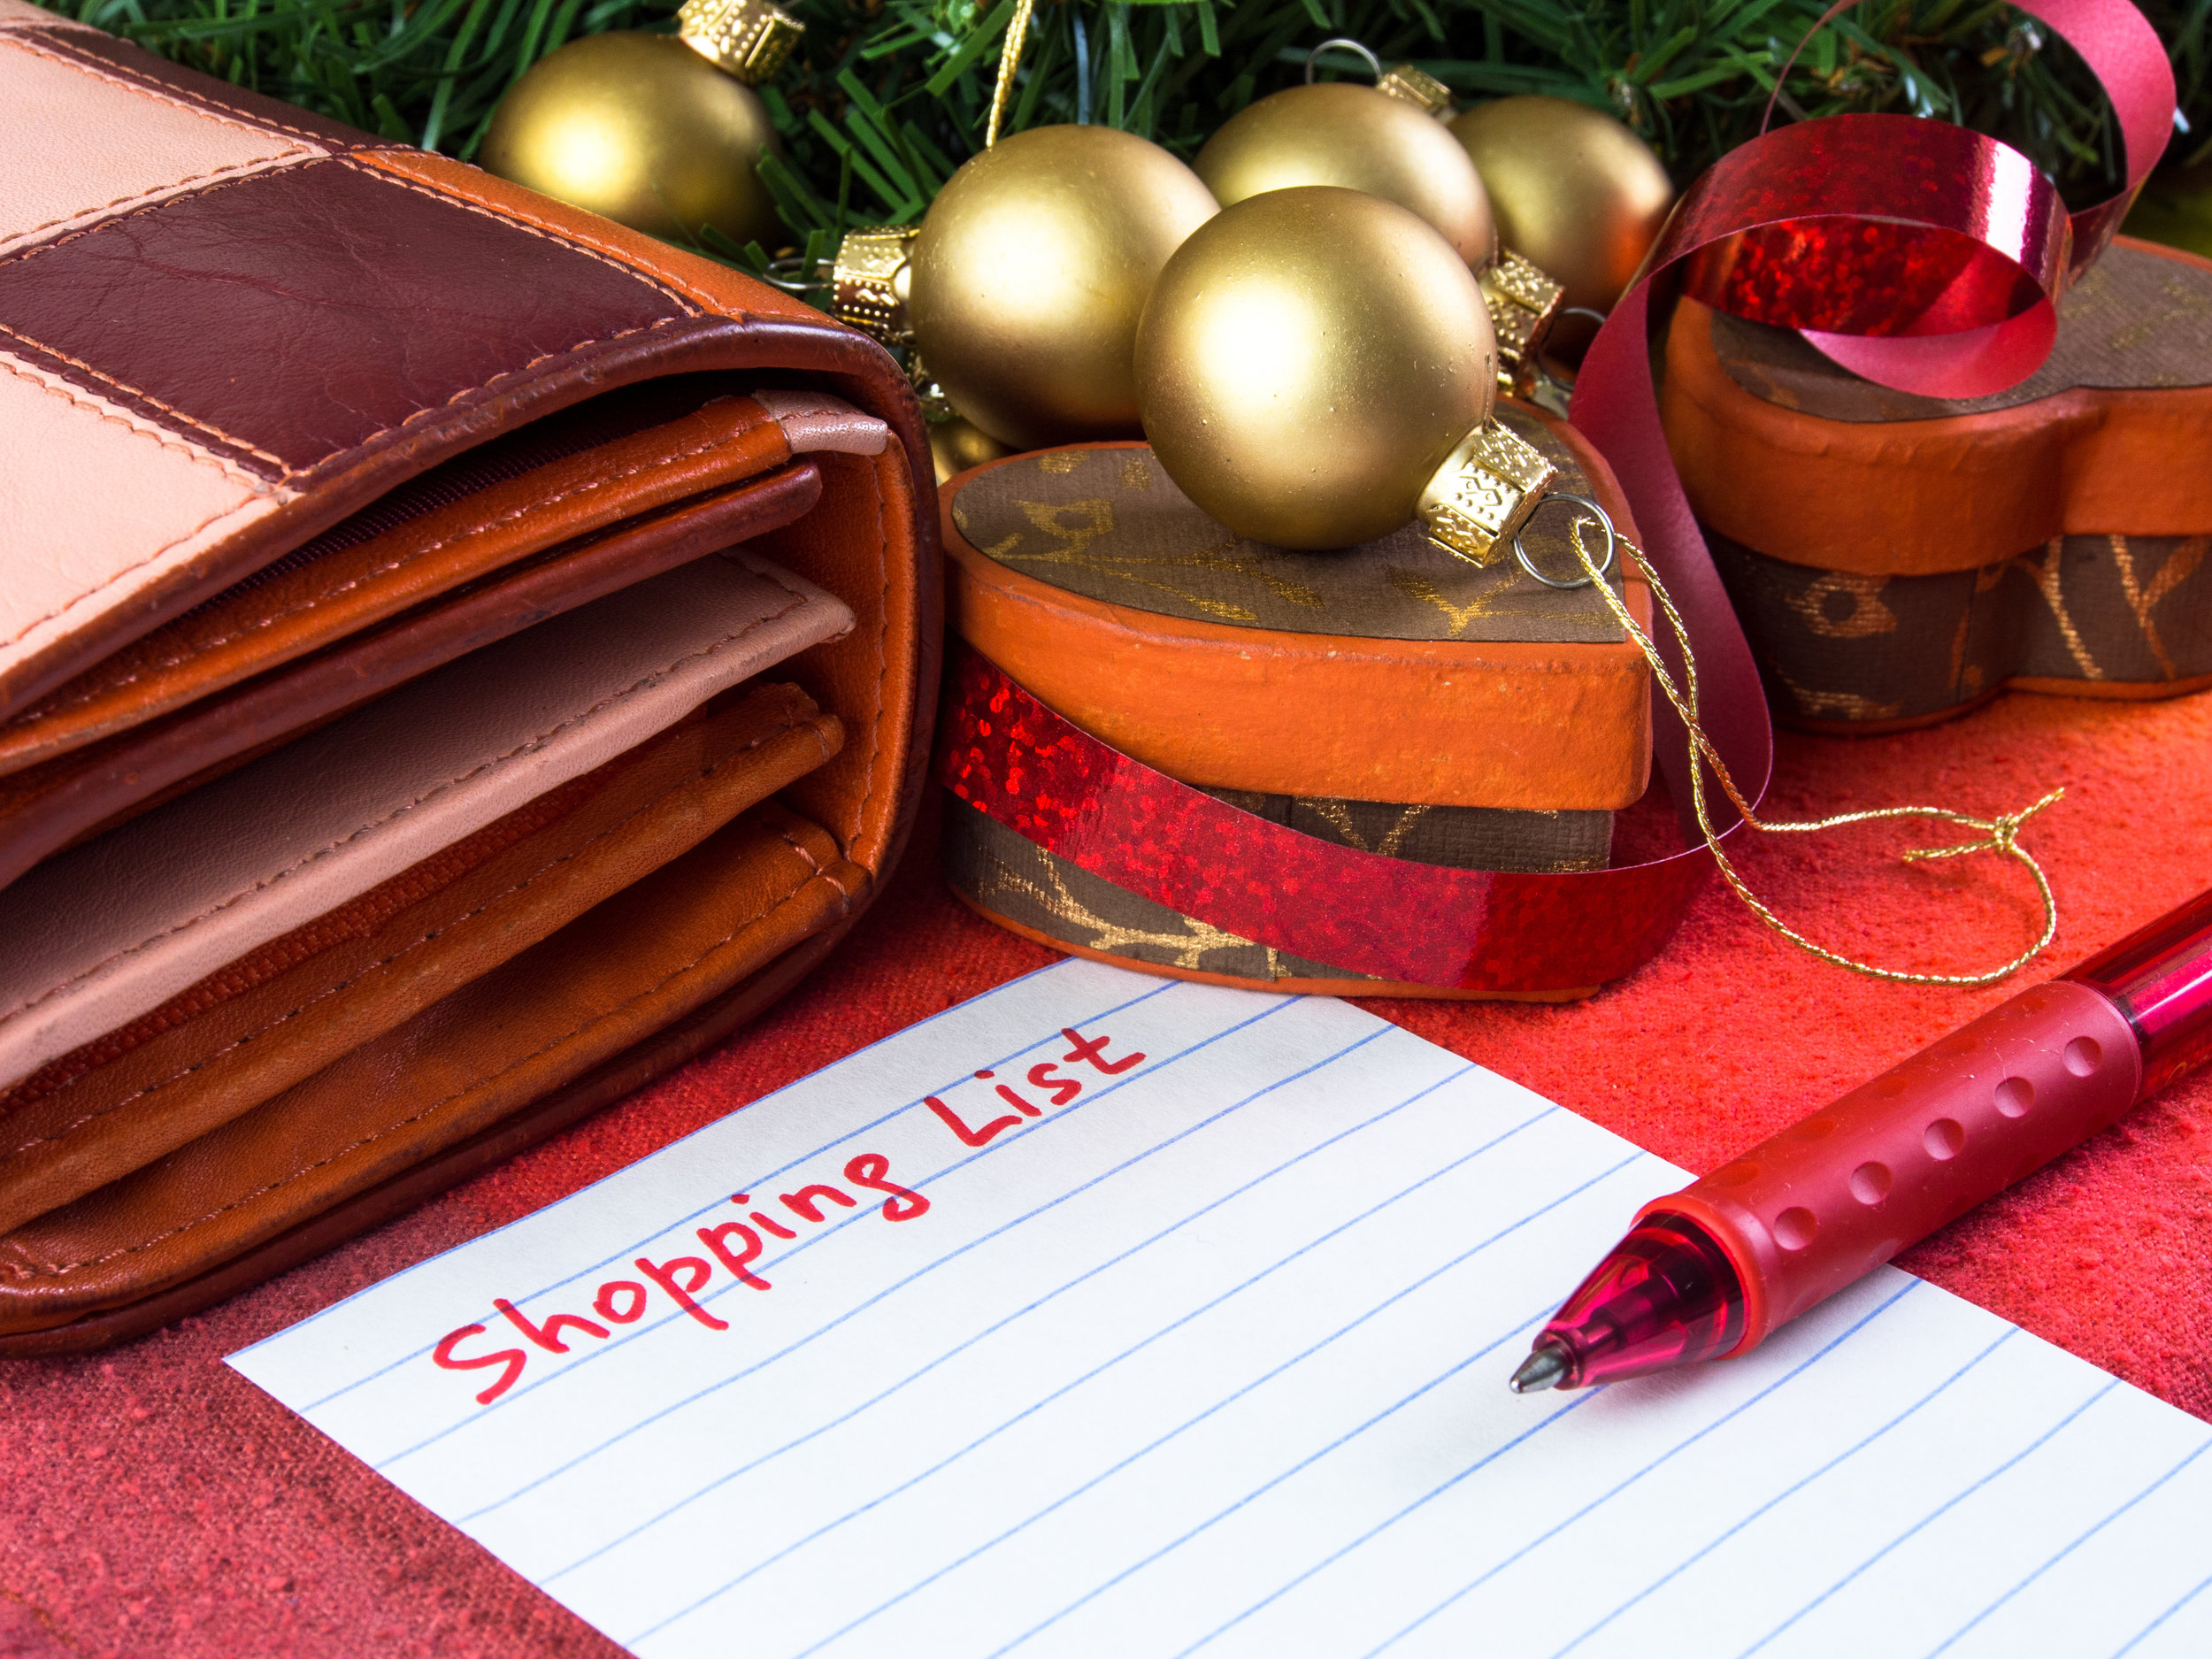 A BLENDED FAMILY GIFT PLAN IS NEEDED - It Makes No Difference if it's your 1st or 25th Christmas together, a plan for Christmas shopping is always needed for your blended family.